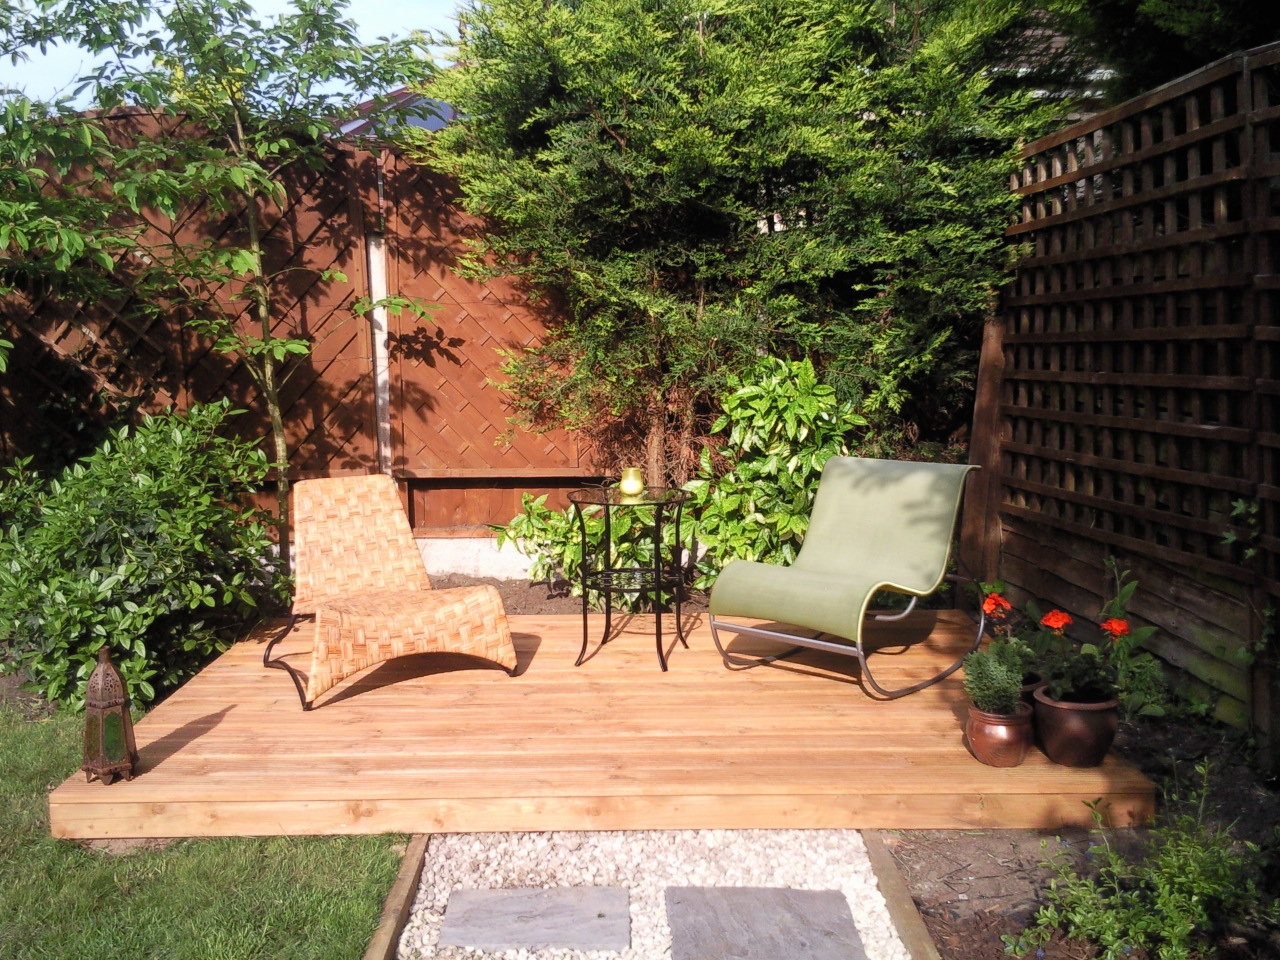 Garden ideas and plans experienced landscape gardener in south london - Garden ideas london ...